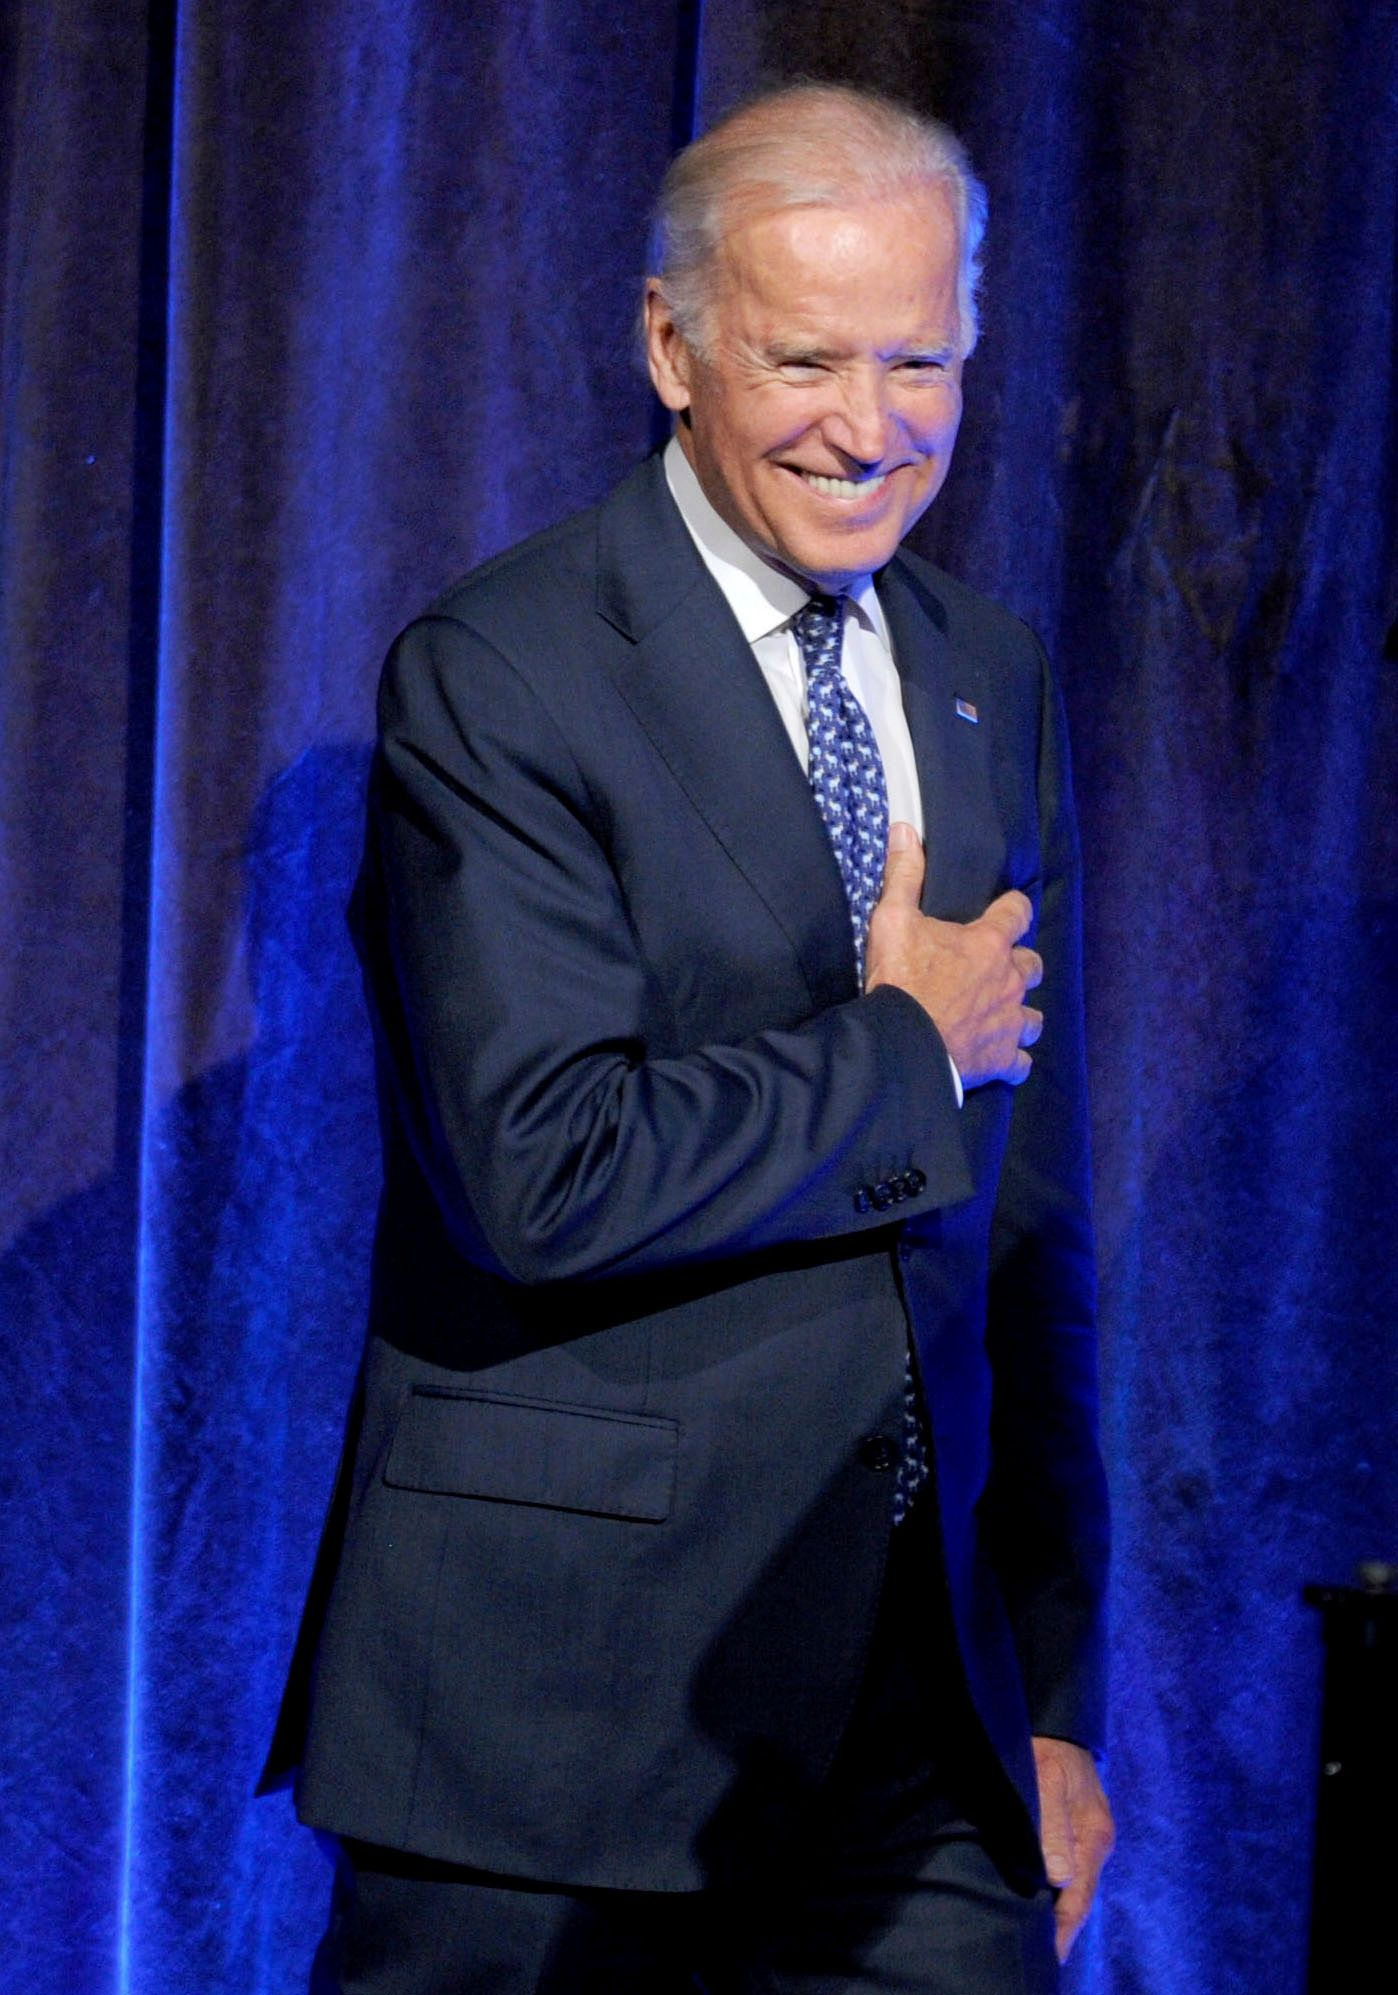 APRIL 1, 2019: Joe Biden accused of sexual misconduct by former Nevada state assemblywoman Lucy Flores. - File Photo by: zz/Dennis Van Tine/STAR MAX/IPx 2015 7/9/15 Vice President Joe Biden at The Freedom to Marry Celebration. (NYC)